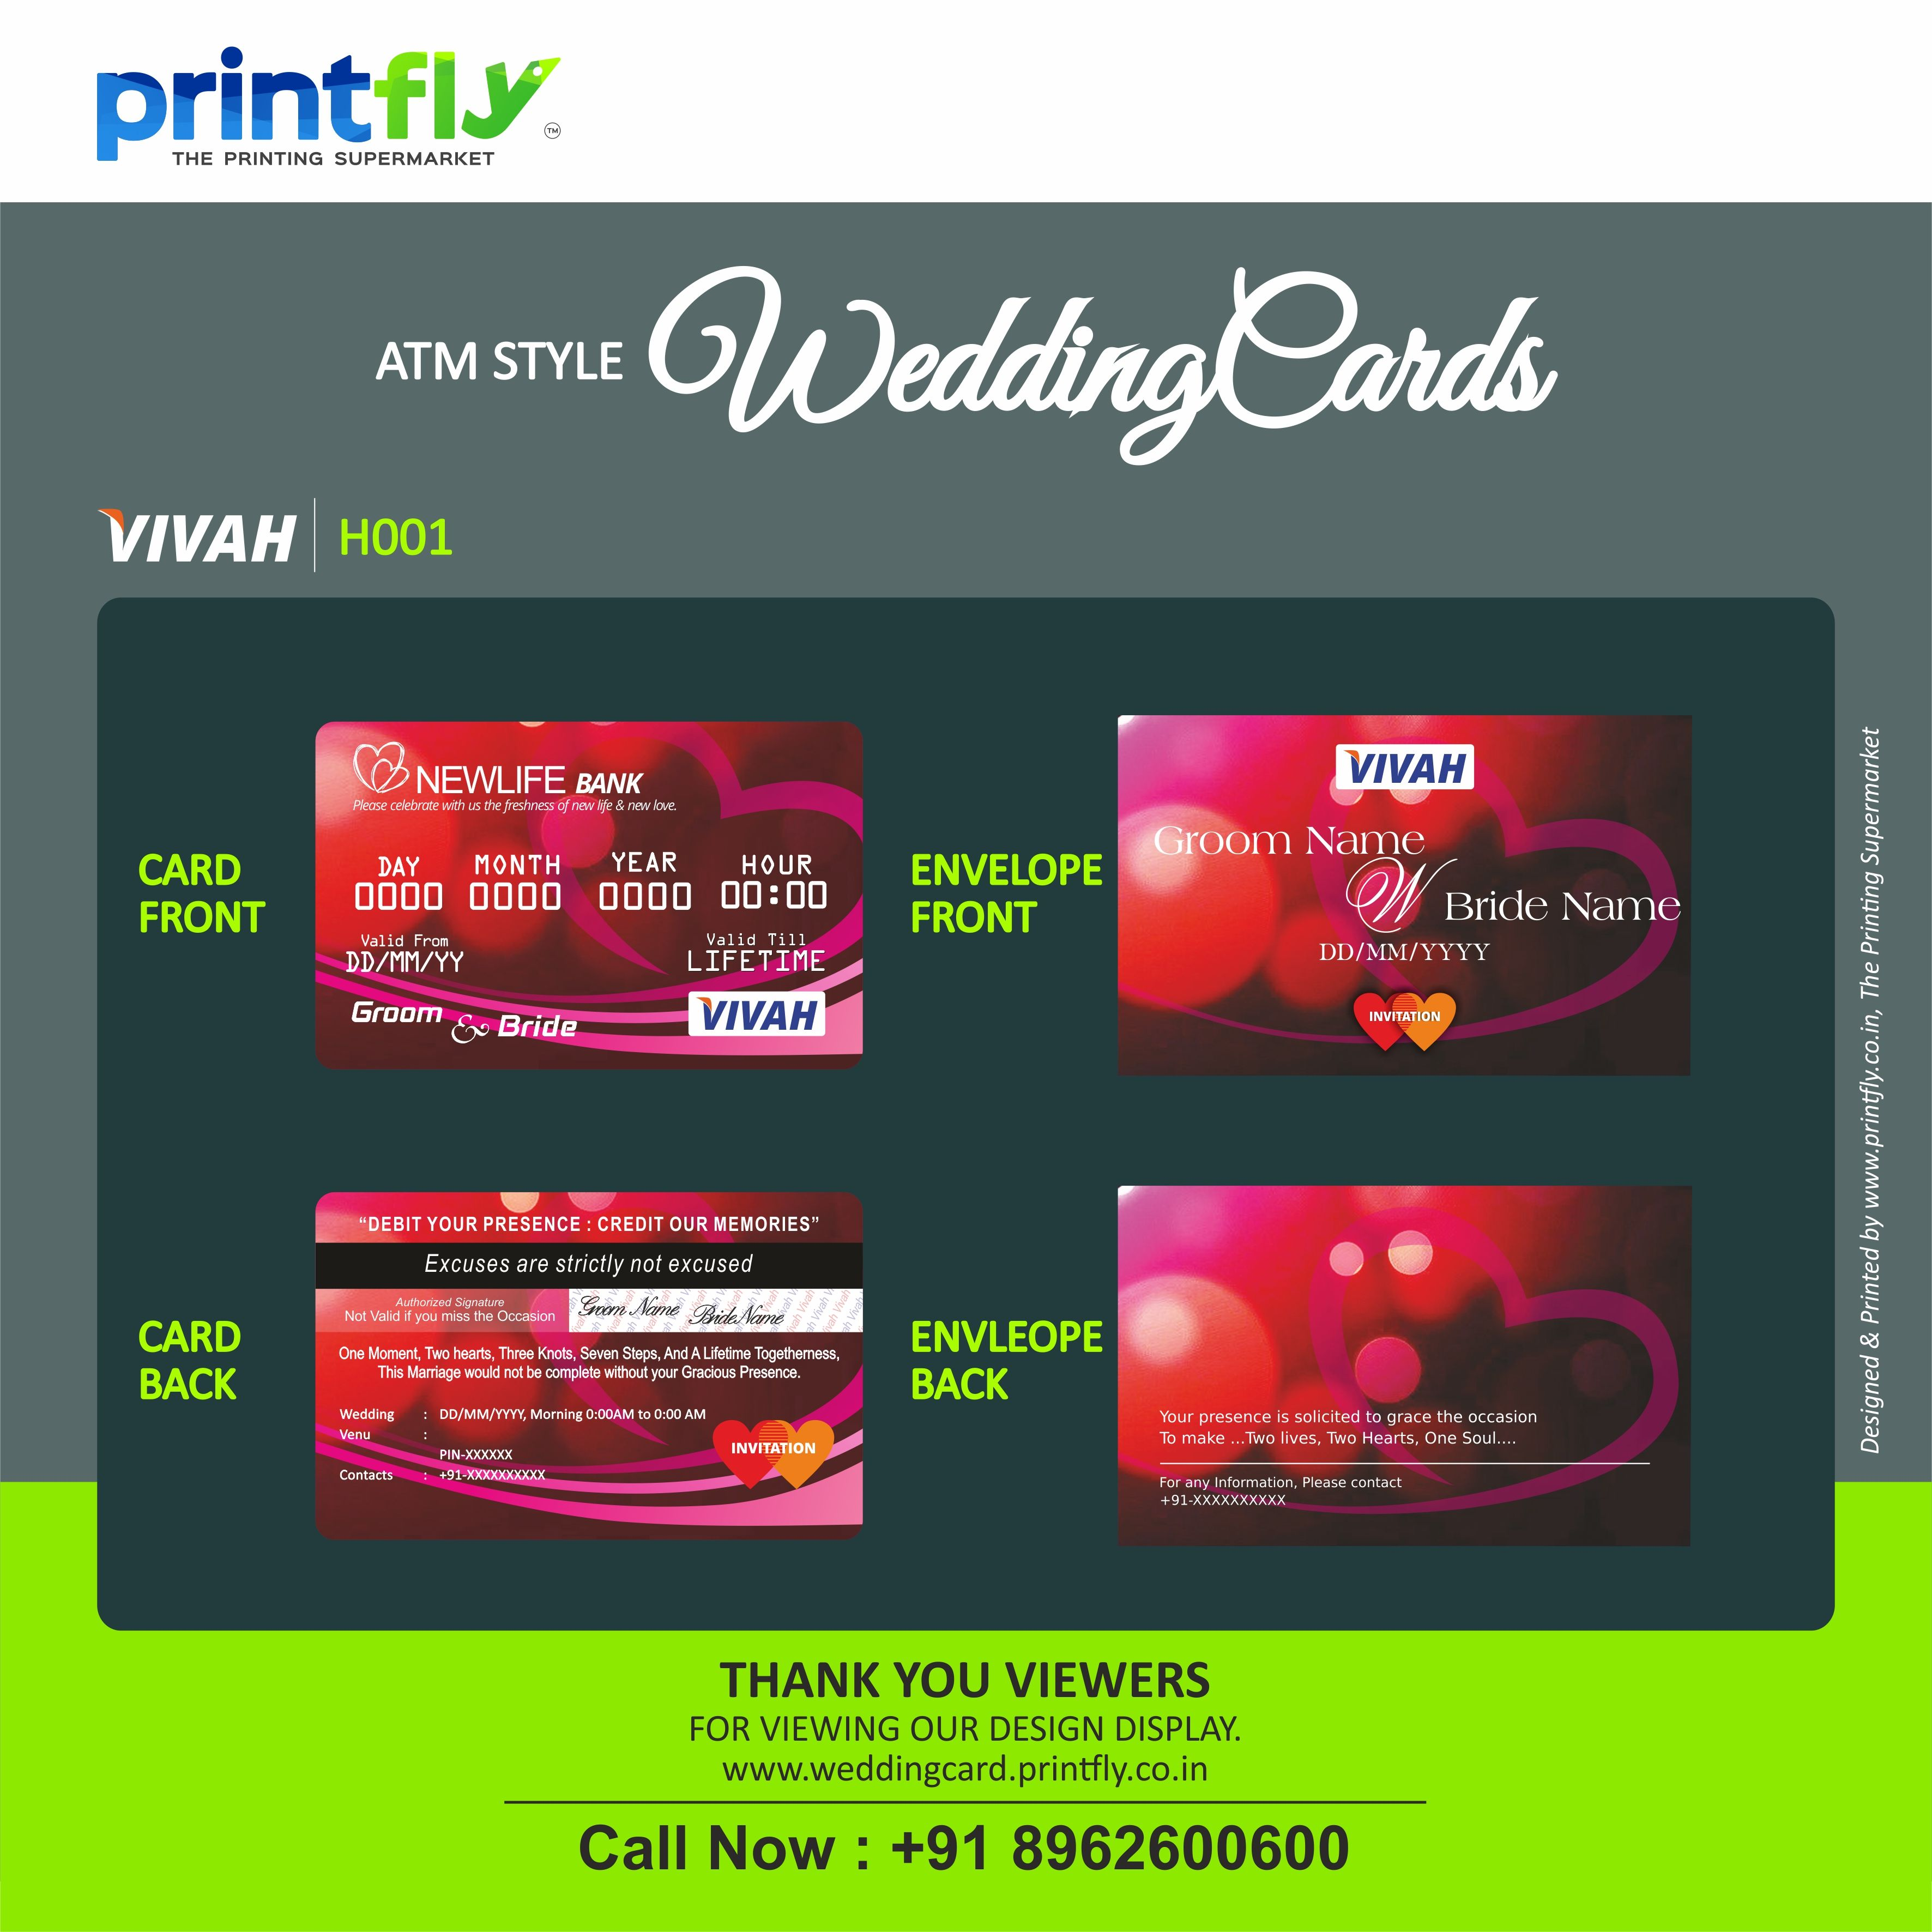 Atm style wedding invitations cards are exactly like an atm card atm style wedding invitations cards are exactly like an atm card made of pvc stopboris Image collections